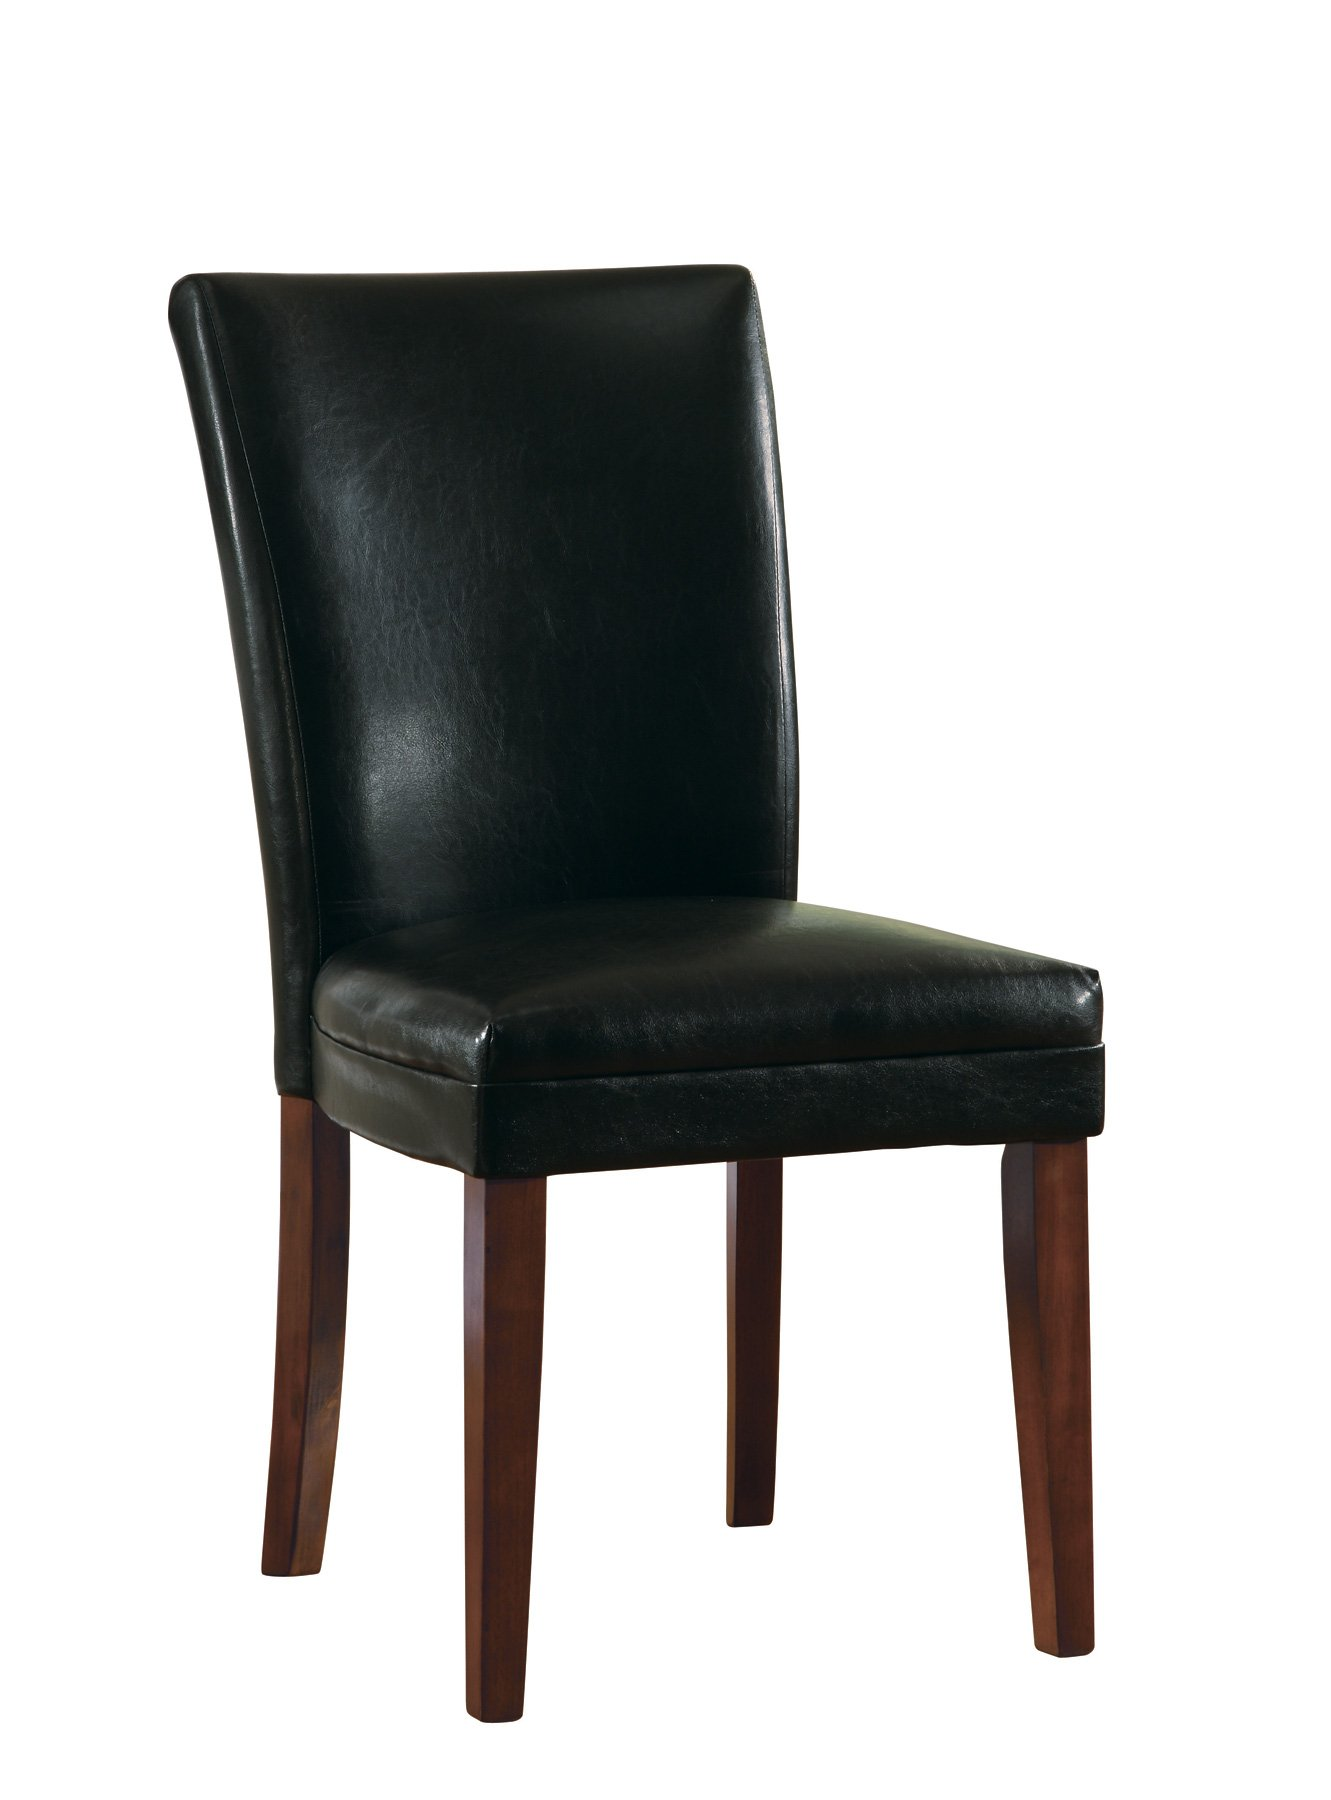 Coaster Home Furnishings Casual Dining Chair, Cherry/Black, Set of 2